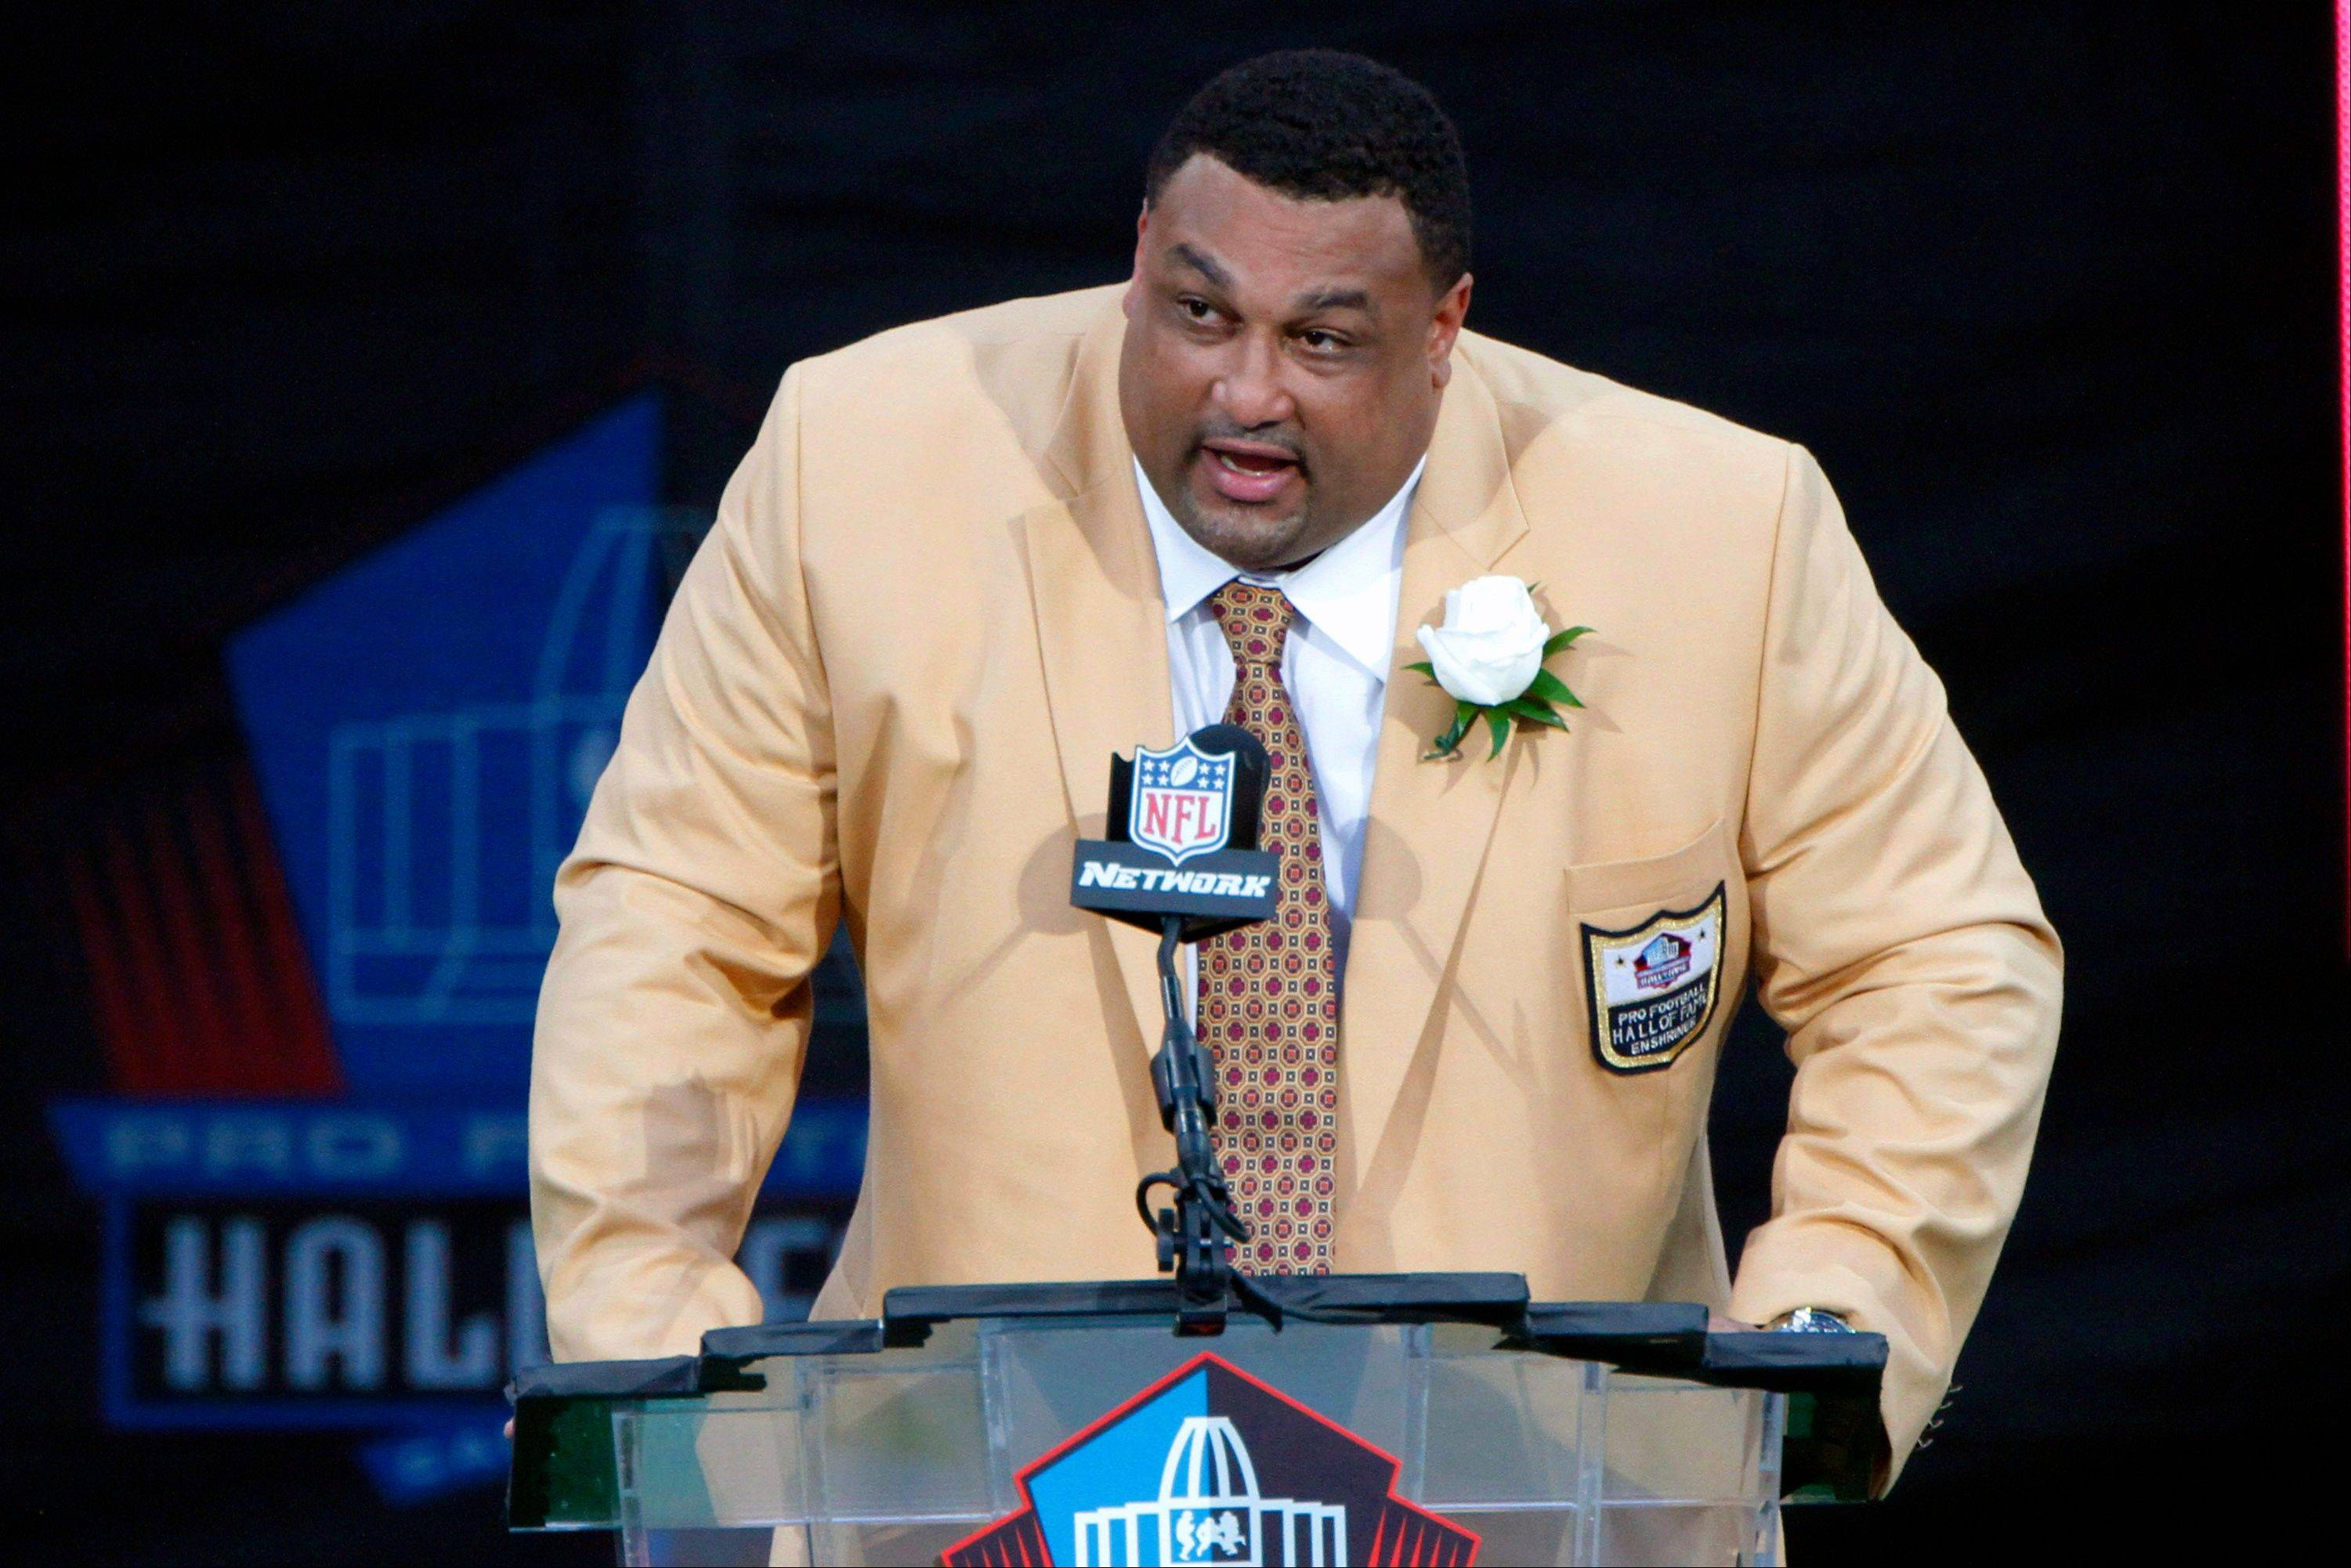 Former NFL player Willie Roaf speaks Saturday during his induction into the Pro Football Hall of Fame in Canton, Ohio.